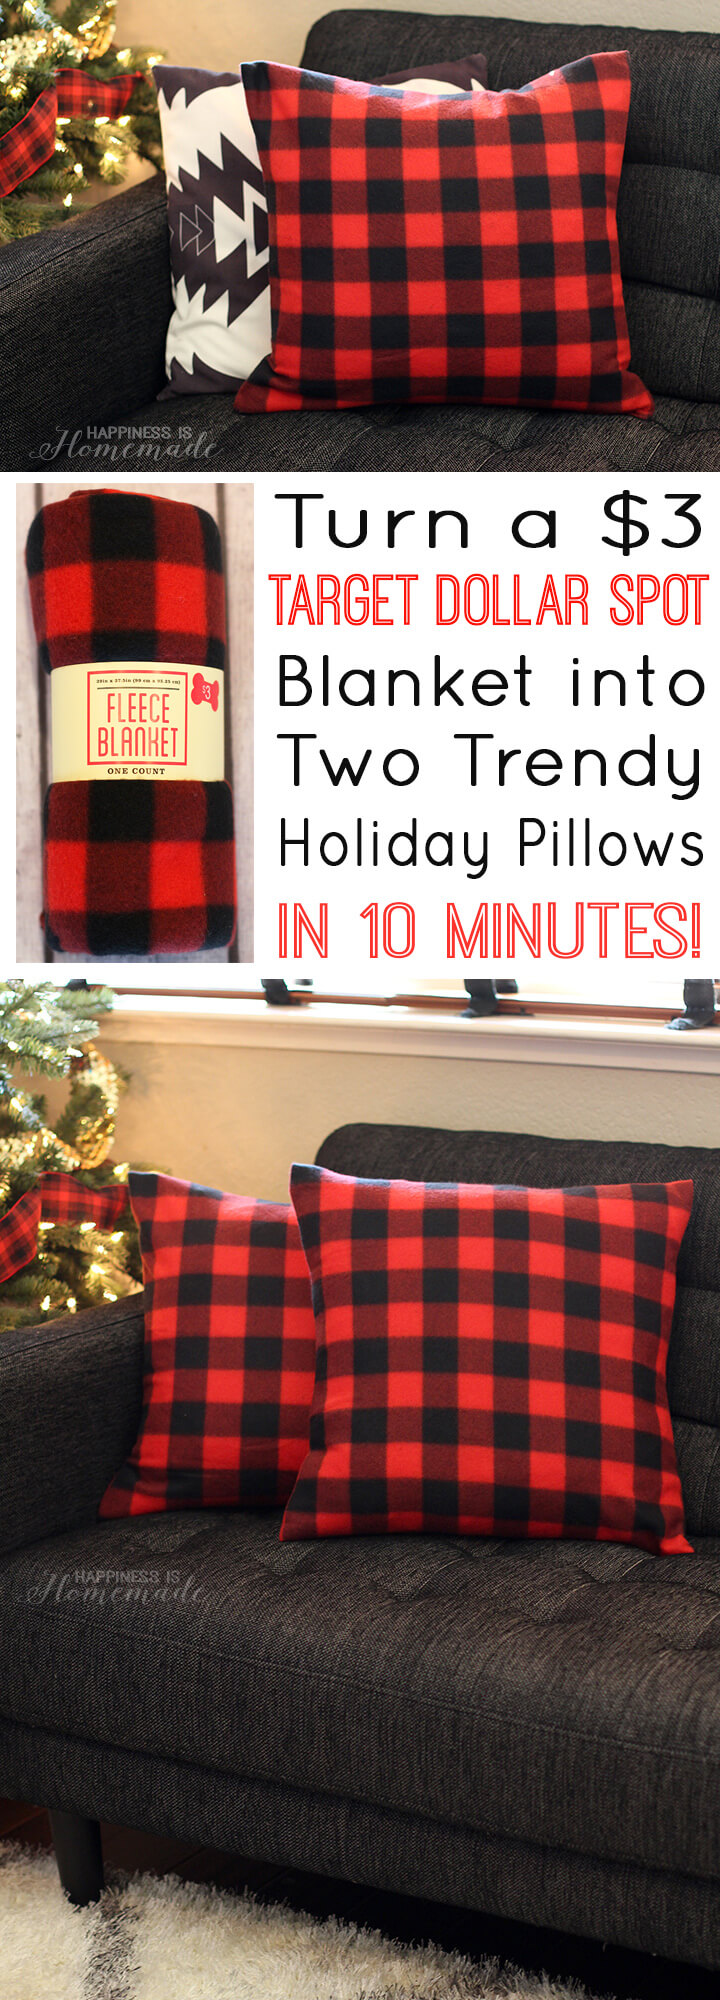 Turn a Three Dollar Target Blanket into Festive Holiday Pillows